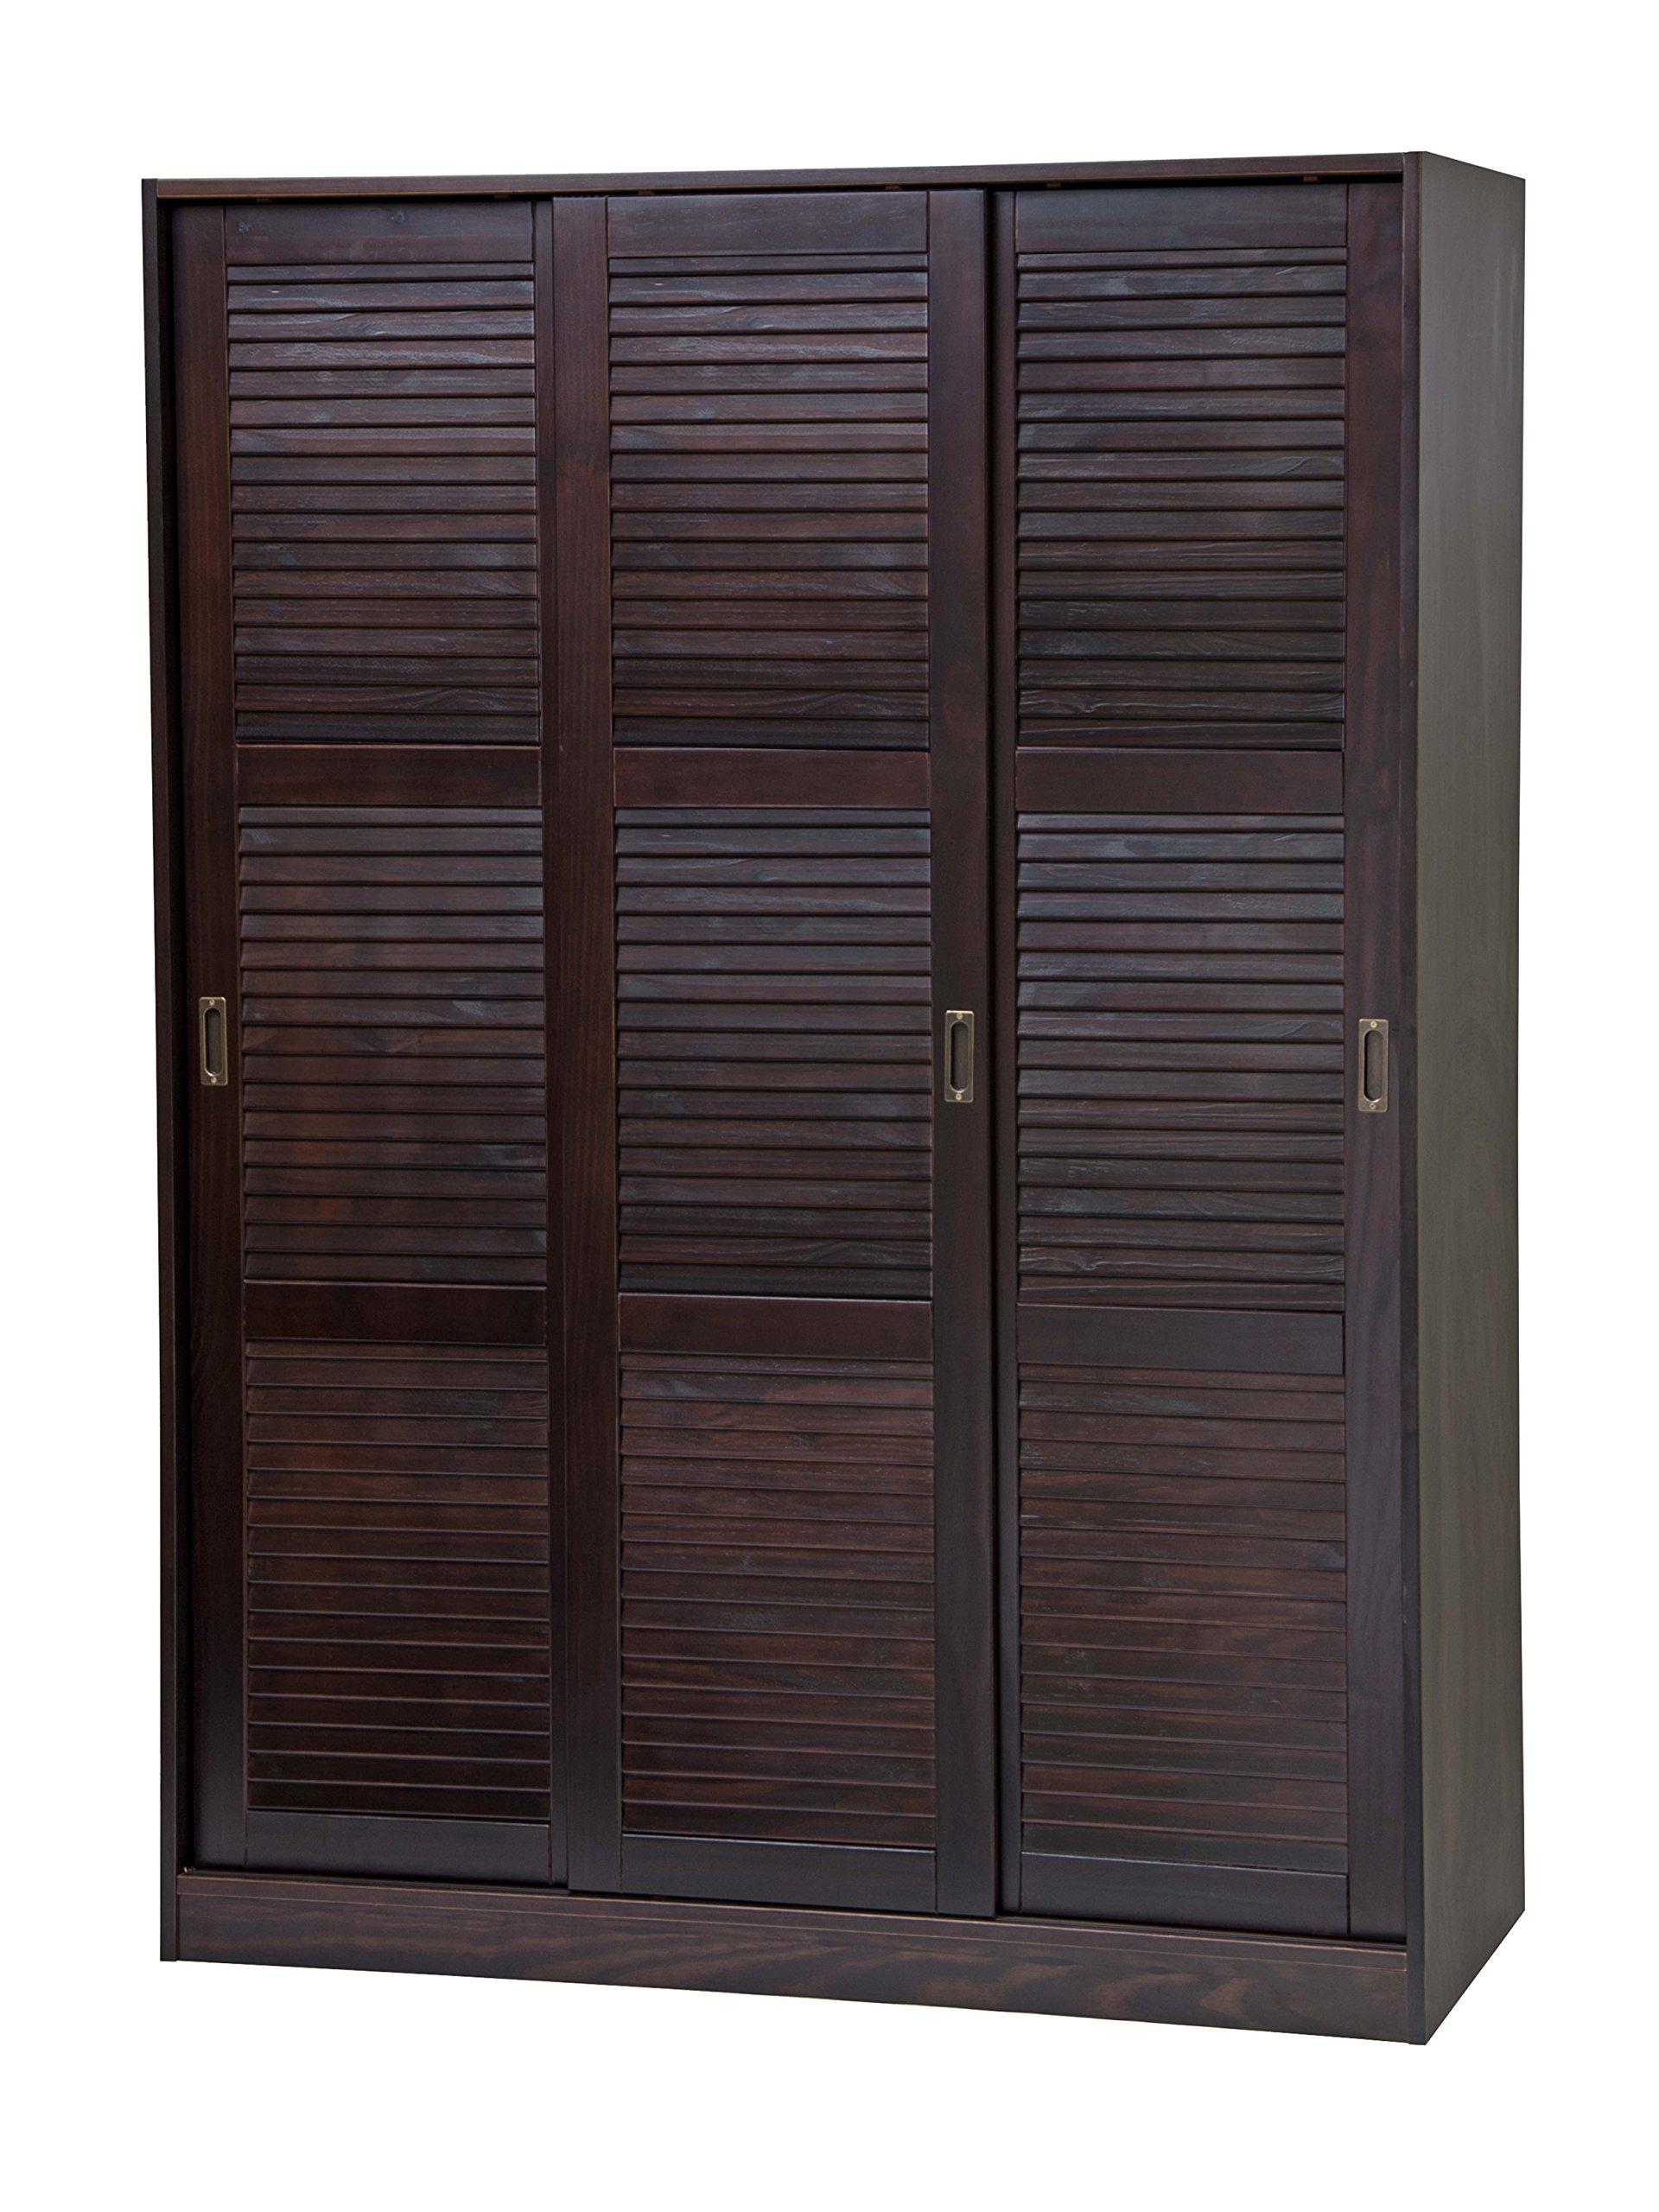 100% Solid Wood 3-Sliding Door Wardrobe/Armoire/Closet/Mudroom Storage by Palace Imports 5676 Java, 52''w x 72''h x 22.5''d. 1 Large/4 Small Shelves, 1 Rod Included. Extra Shelves Sold Separately